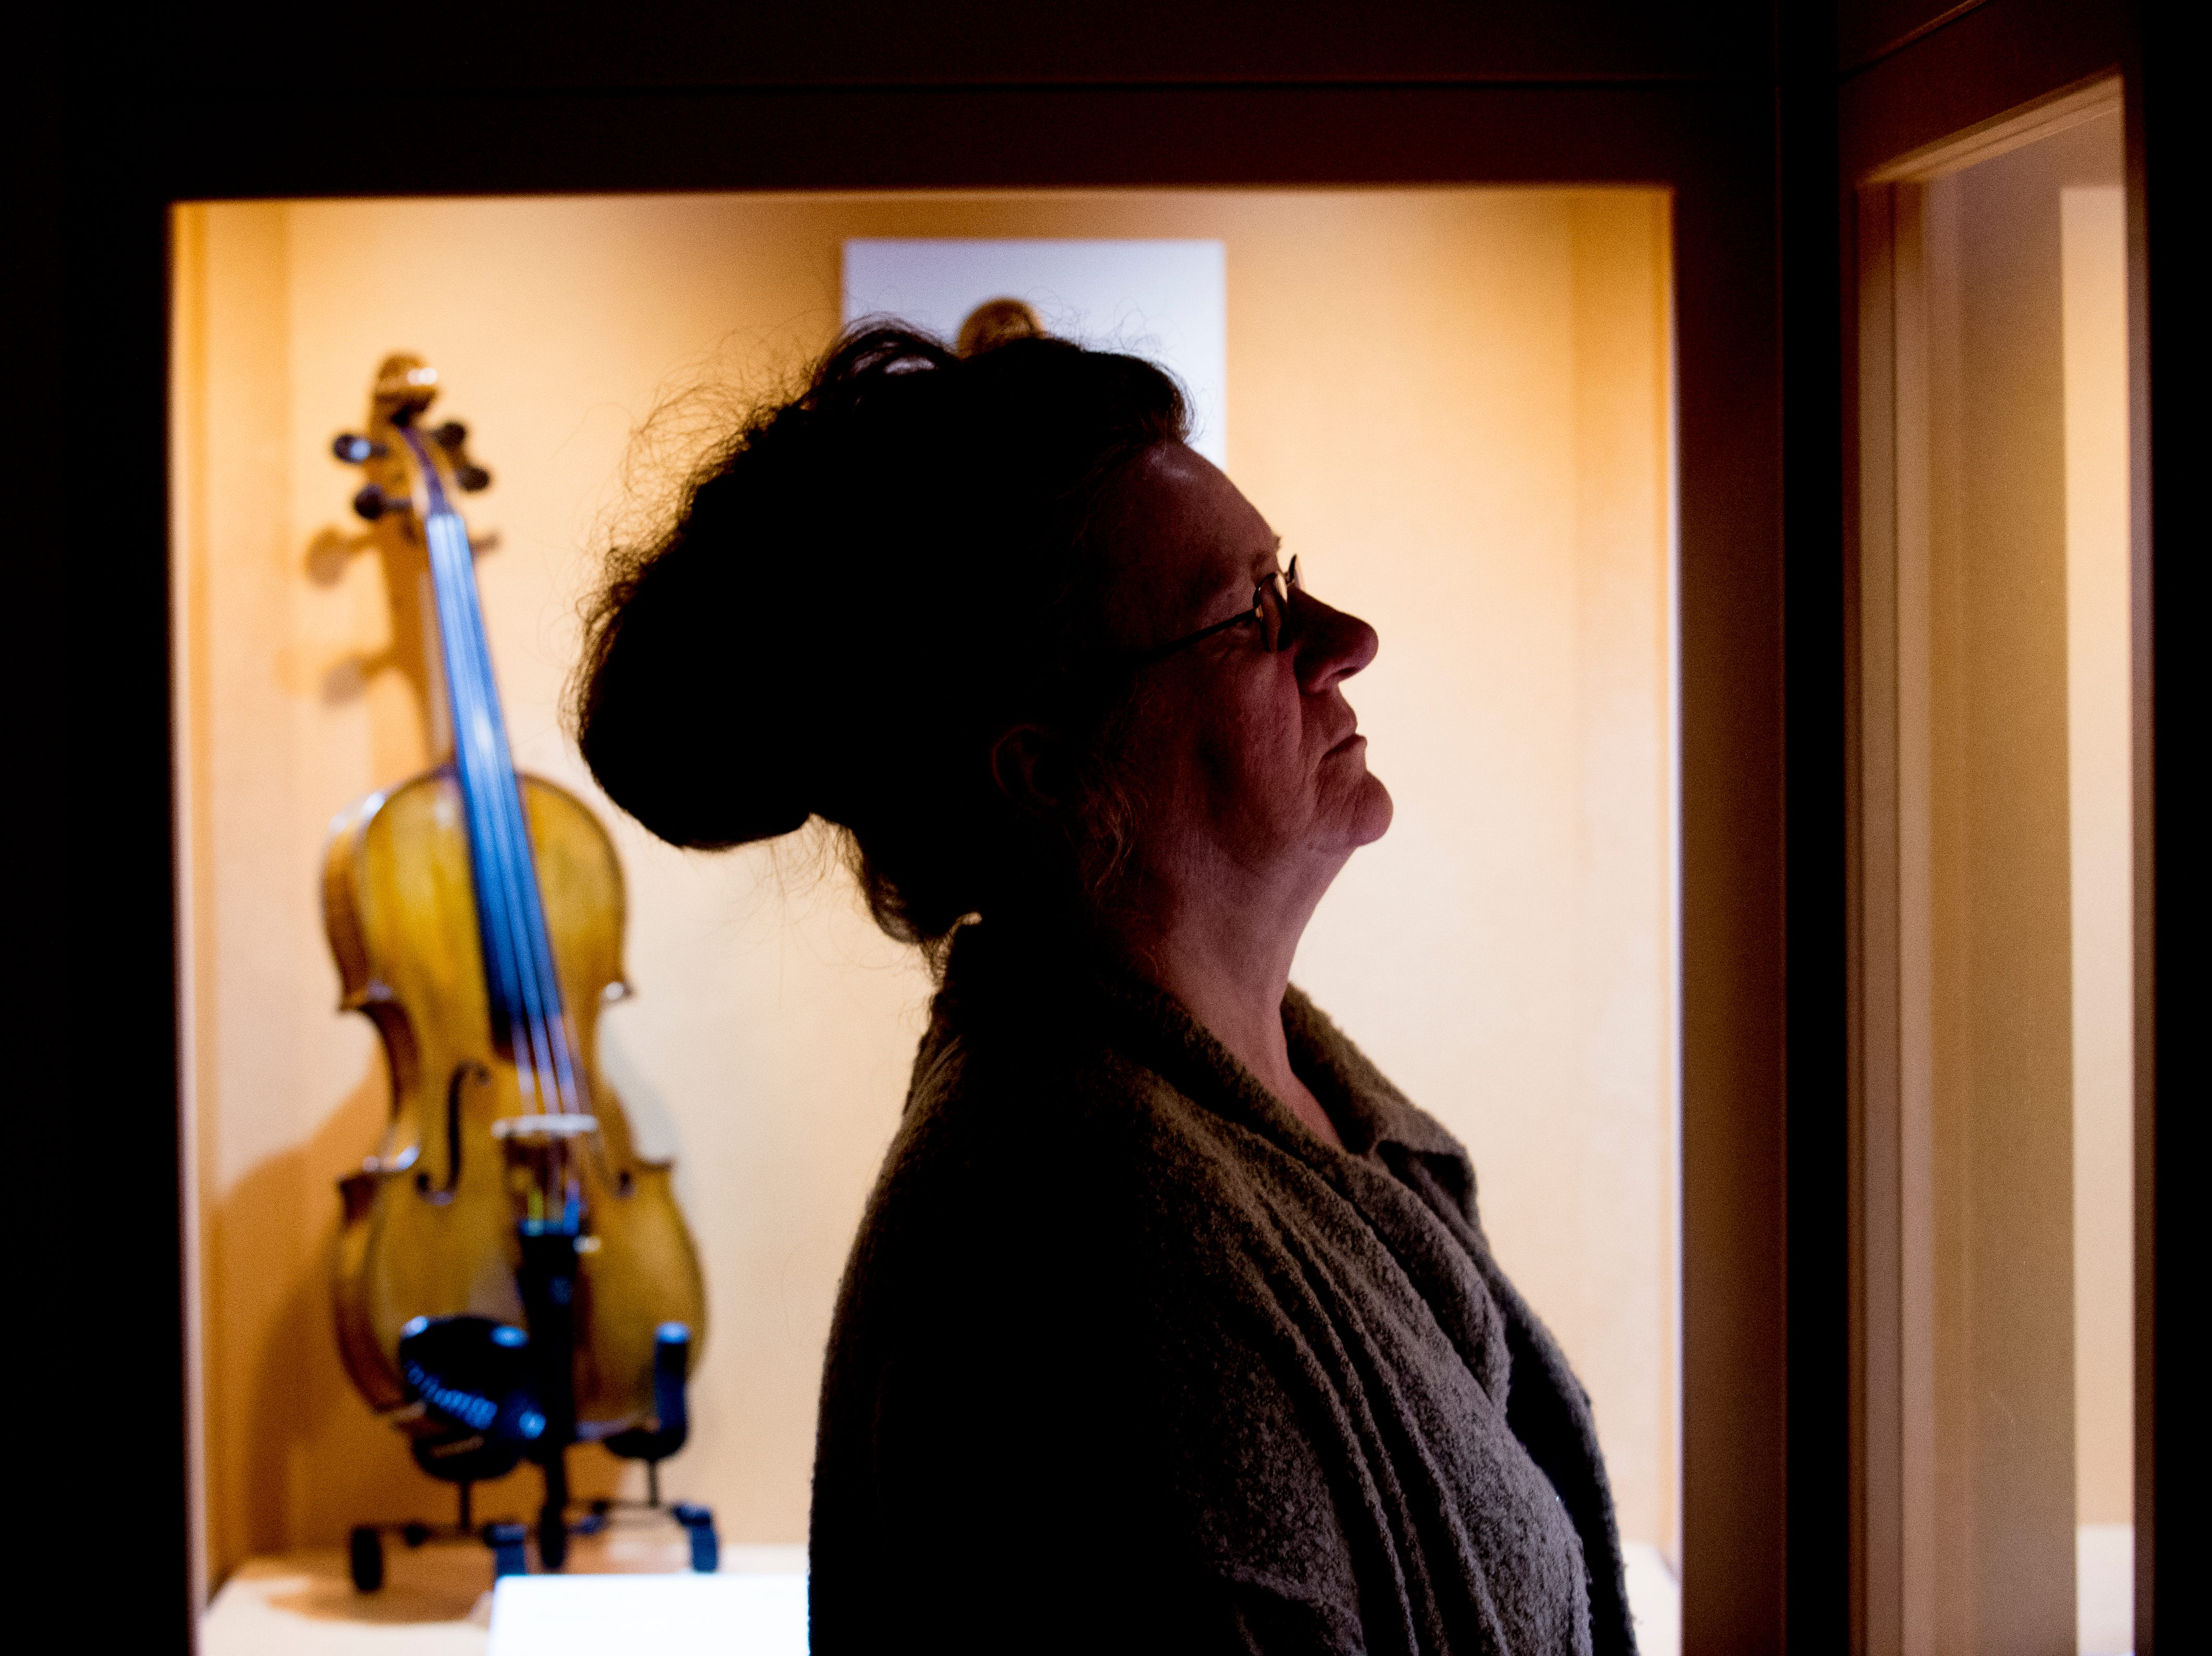 Donna Burton, of Cleveland, Ohio, looks at the Violins of Hope exhibit at the University of Tennessee Downtown Gallery, 106 S. Gay St., in Knoxville, Tennessee on Friday, January 4, 2019. The exhibit, from Israel, features 38 violins that were played by Jewish musicians during the Holocaust. The display runs from Jan. 4-27.